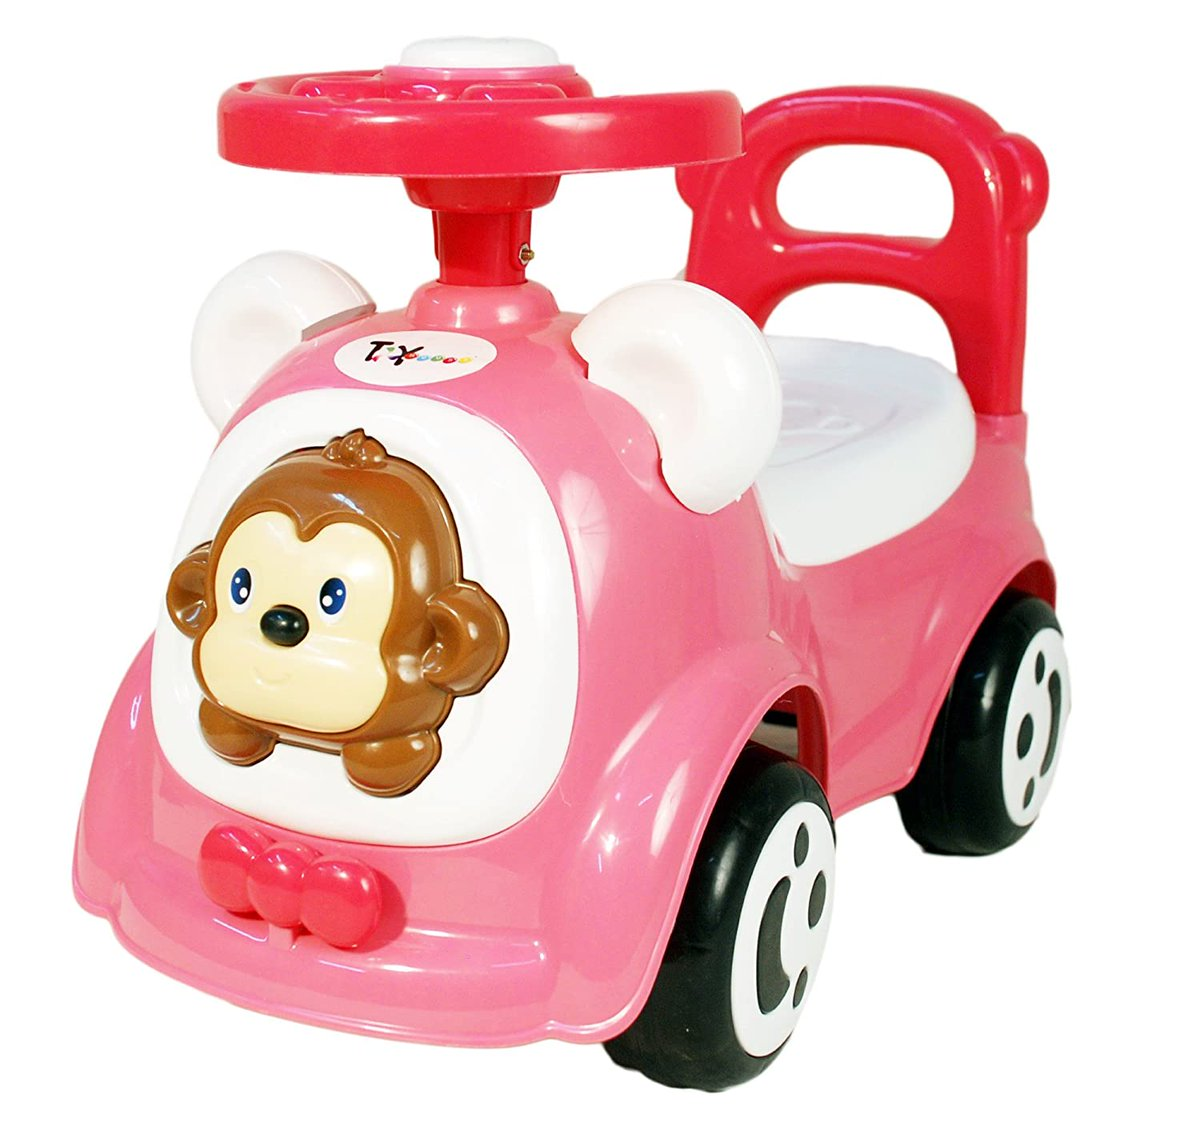 Toy House Happy Jagoo's Funky Push Car,   🔹 Offer price-₹938.00  🔹 MRP-₹2,299.00  🔹 You Save: ₹ 1,361.00 (59%)  ✨ Reviews-3.7 out of 5 stars  ✨ Category- #toys   #deal #loot